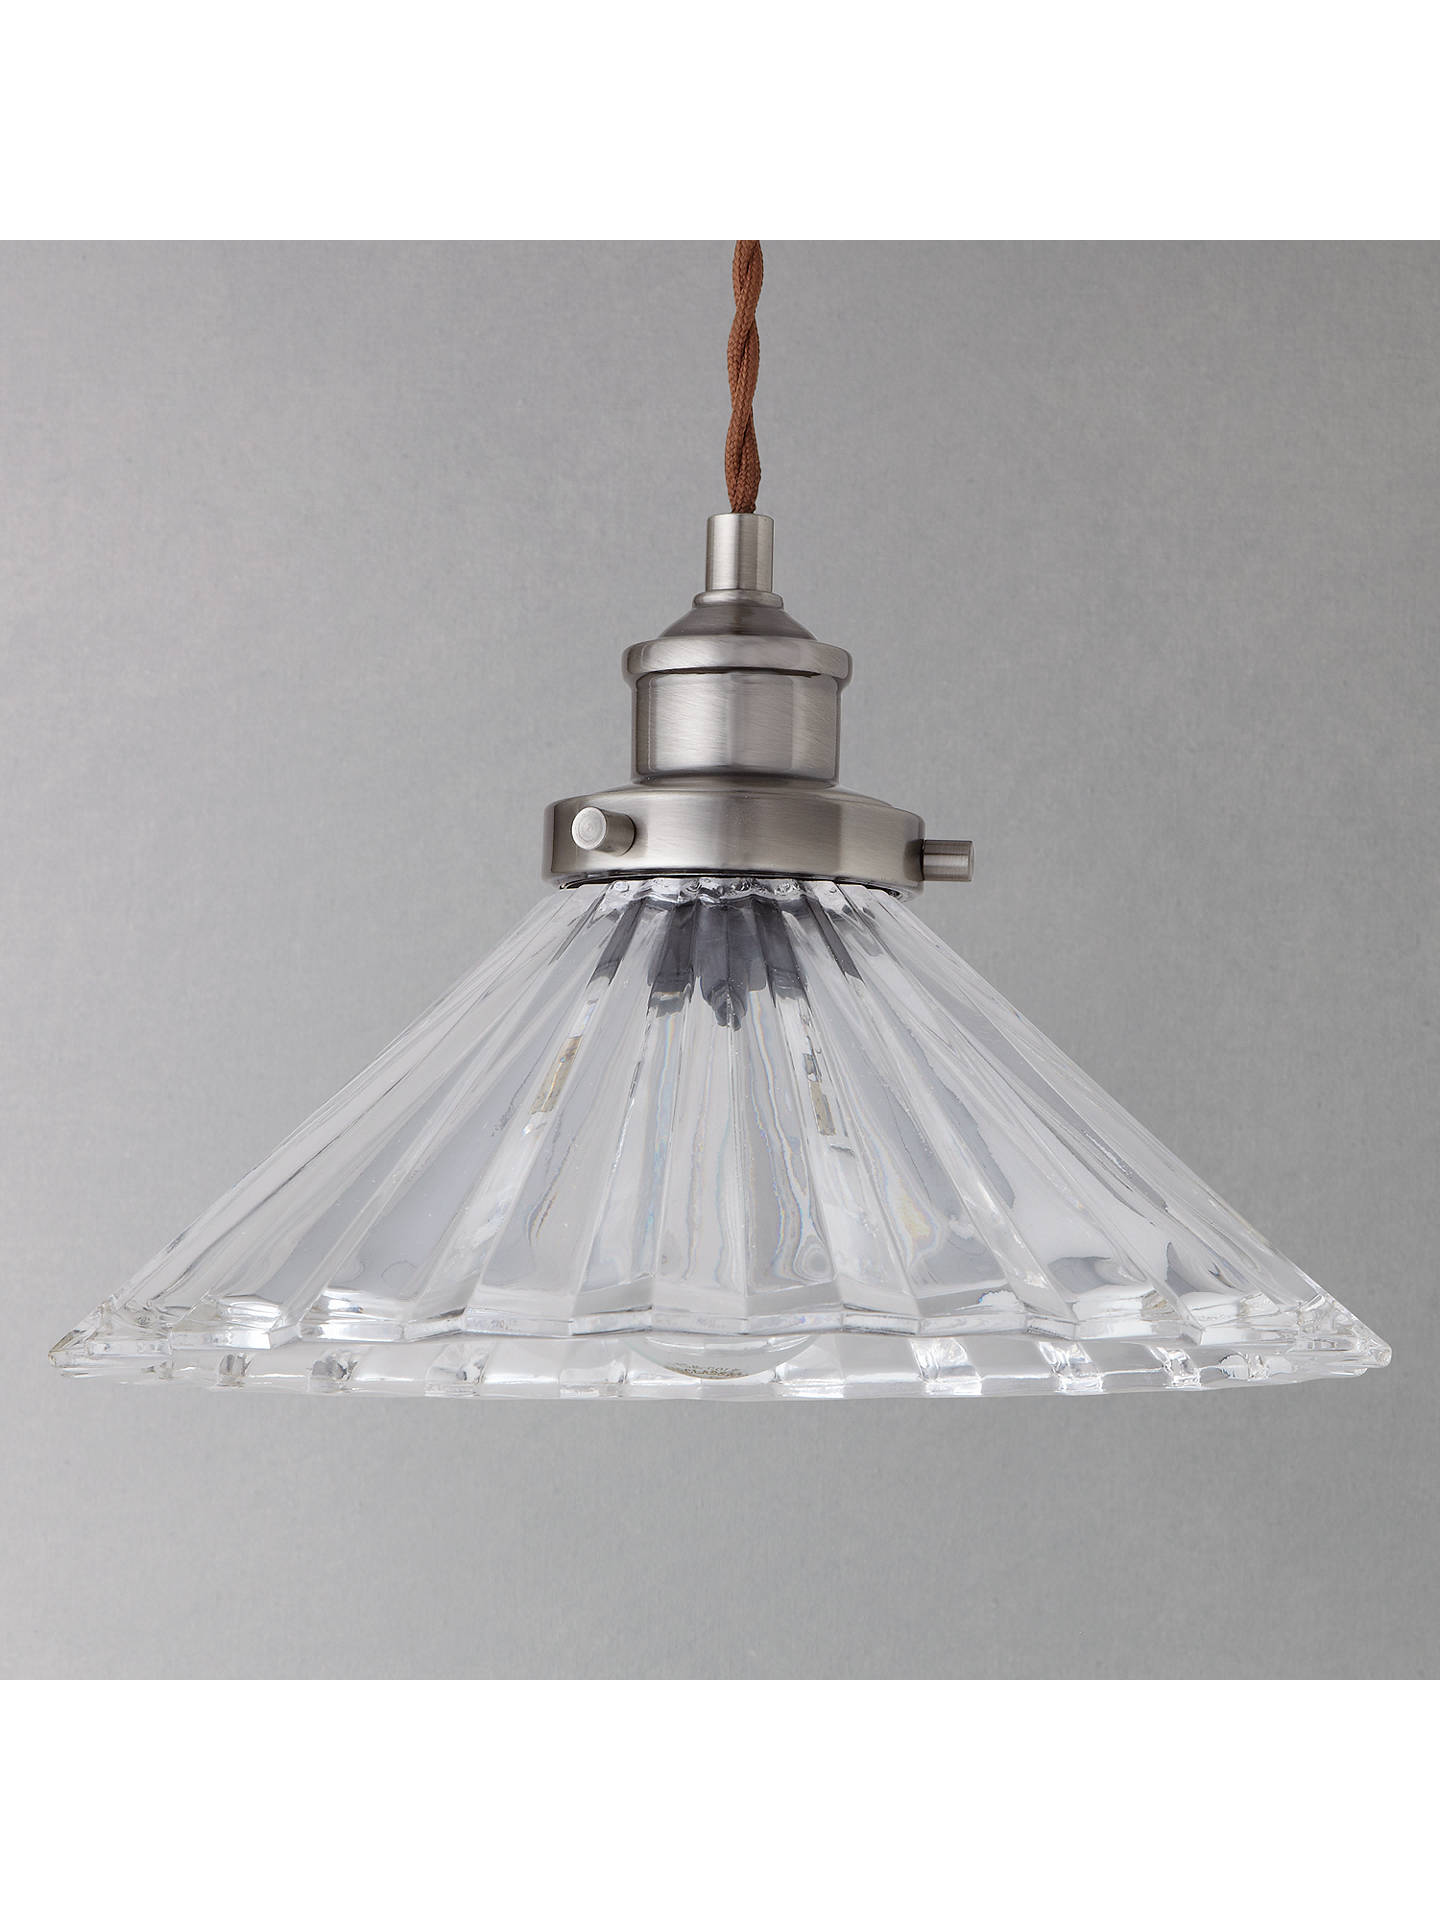 BuyJohn Lewis & Partners Phineas Resto Glass Pendant Online at johnlewis.com